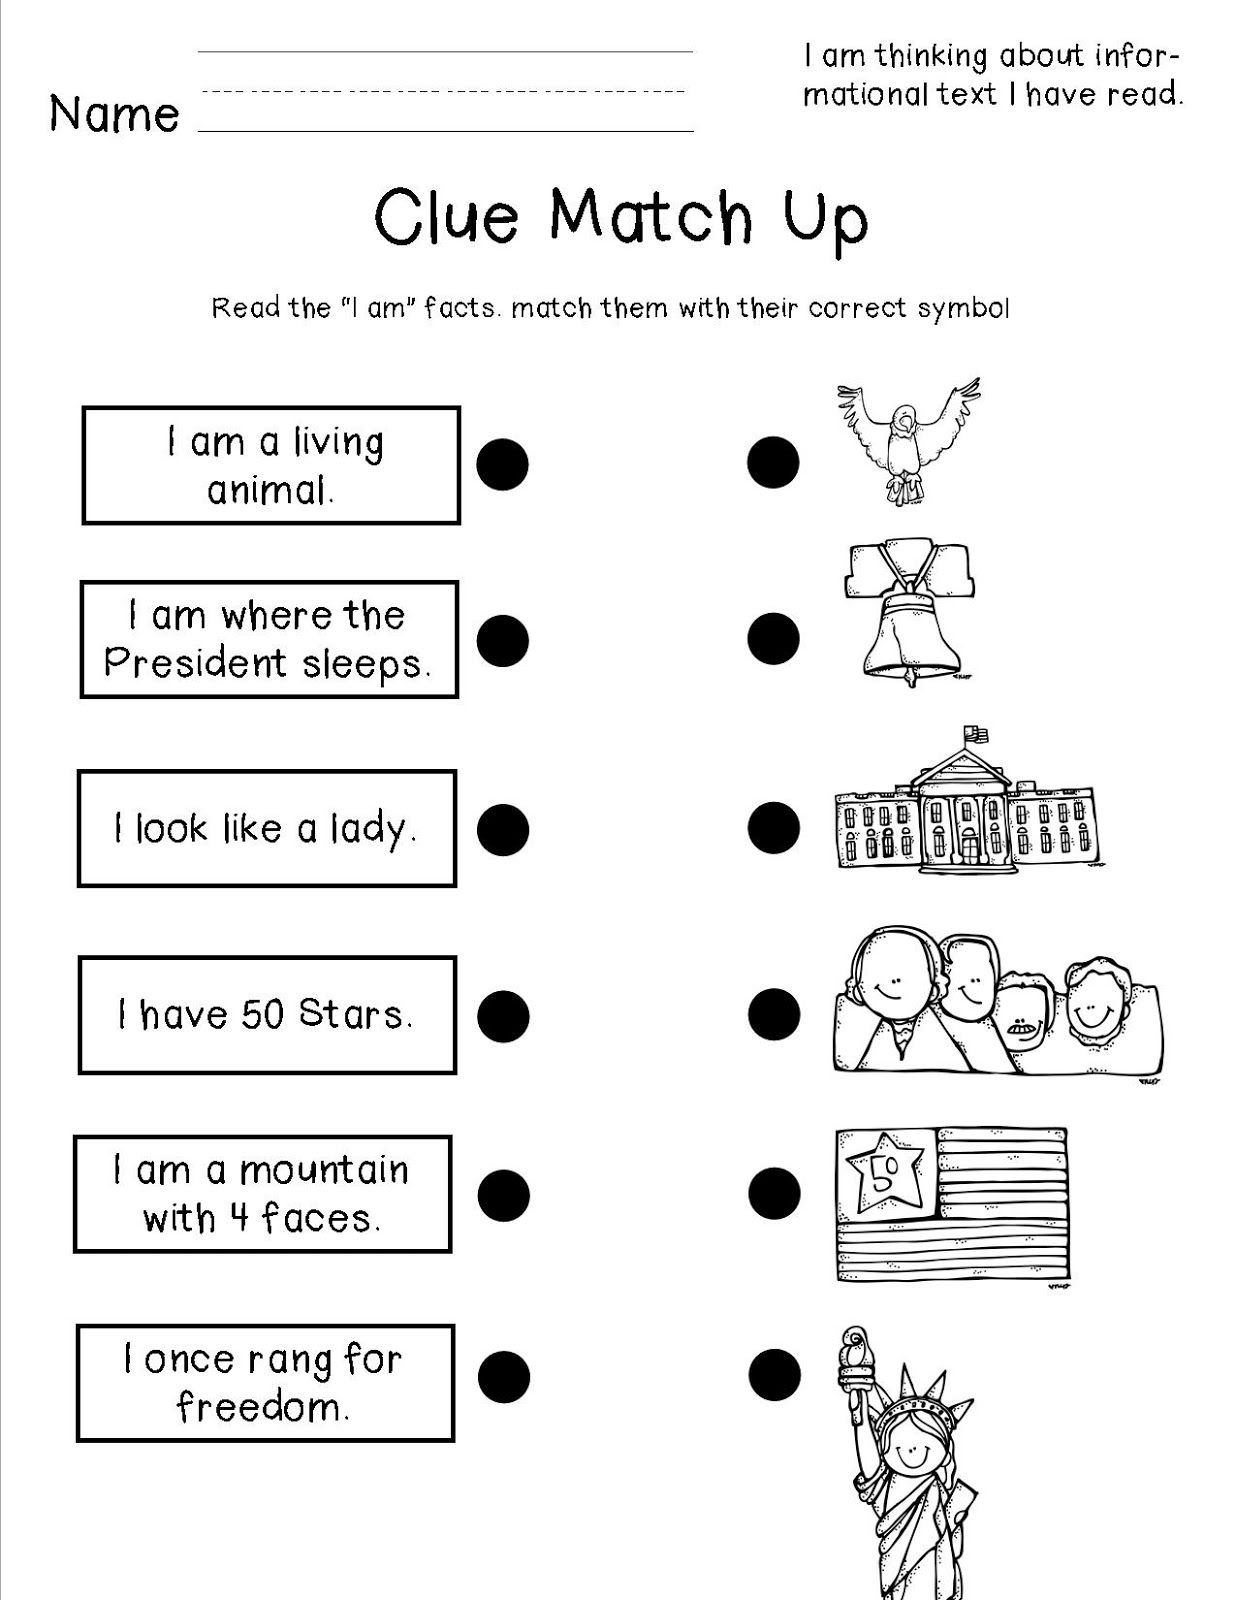 I Have Taught This For 4 Years And Got The Best Clip Art To Turn It Into A Fabul Social Studies Worksheets Kindergarten Social Studies American Symbols Unit